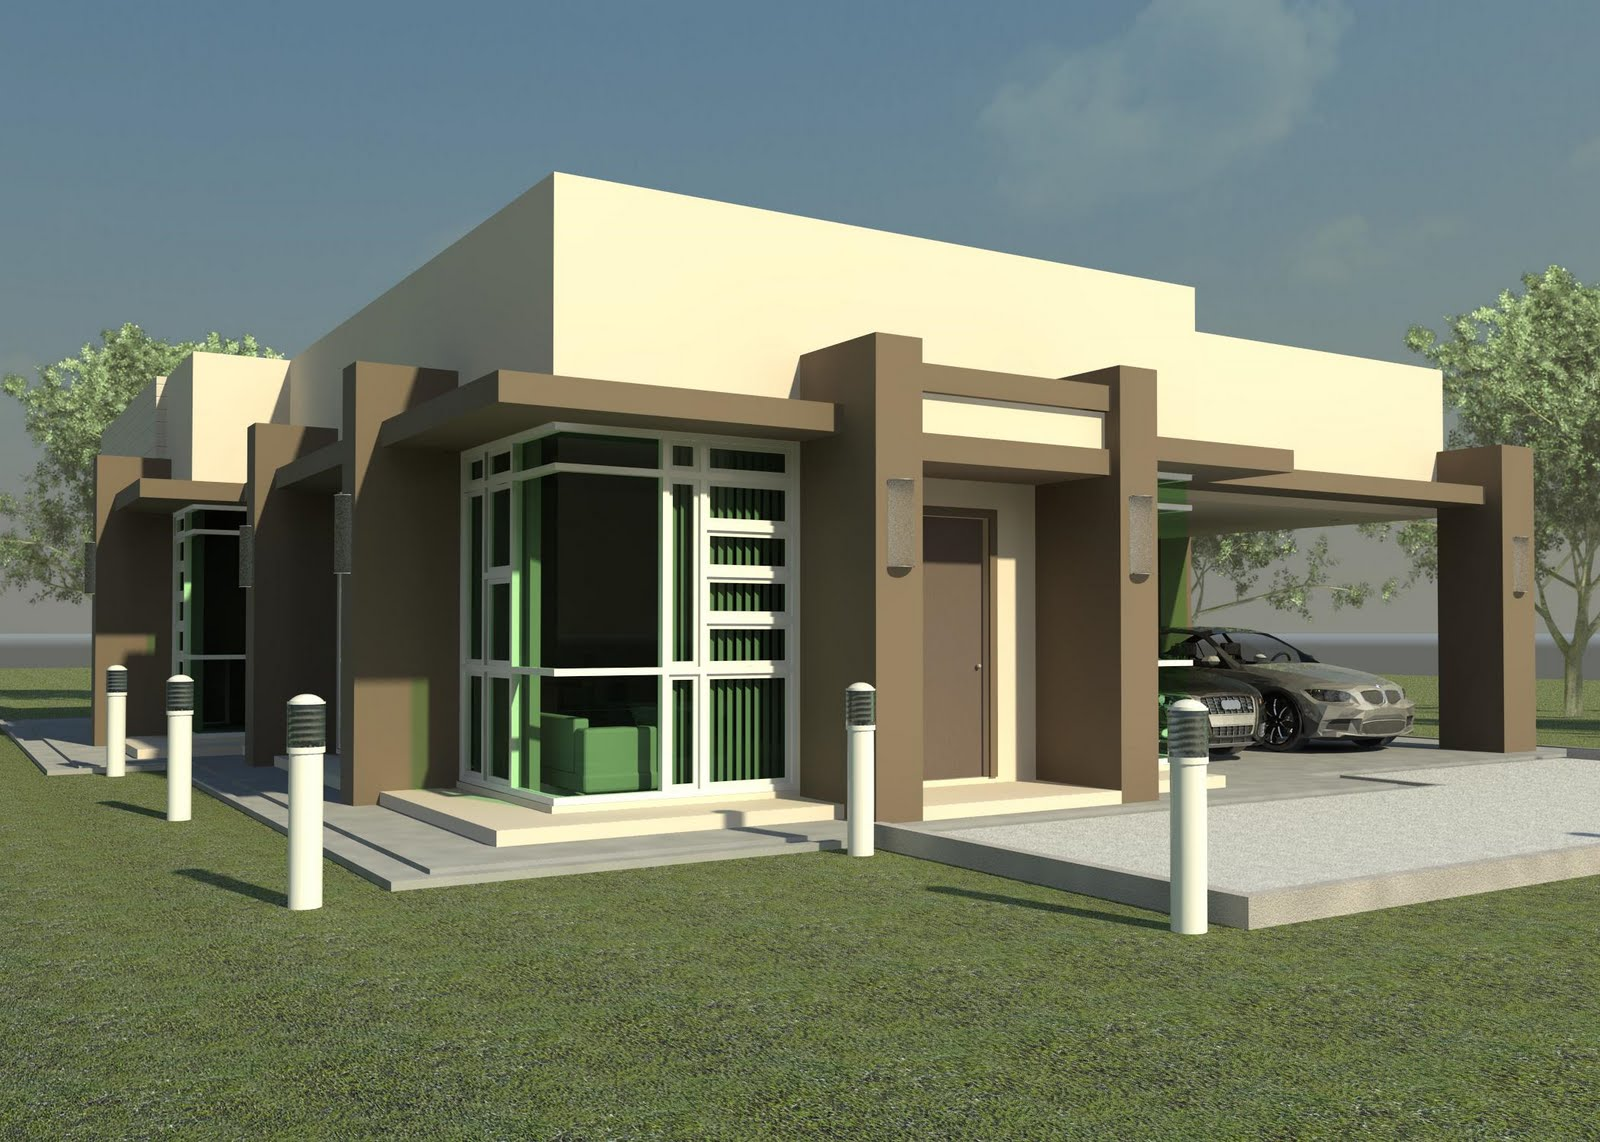 New home designs latest modern small homes designs exterior for Modern house designs images